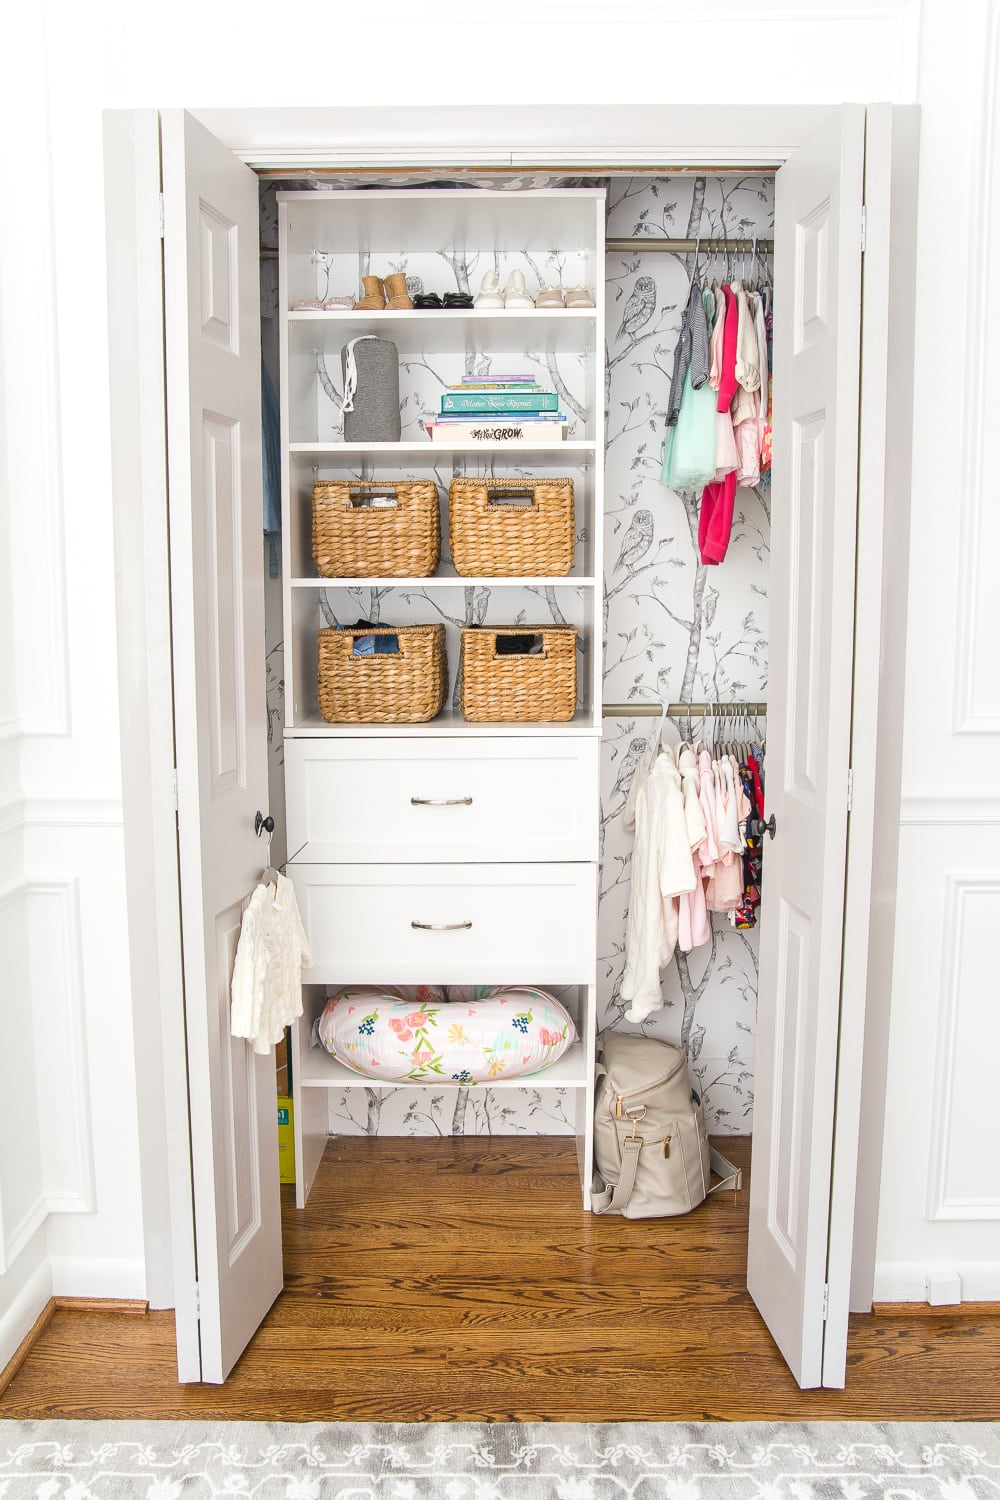 Nursery Organization Baby Closet With Shelving Baskets And Closest Dividers To Make It